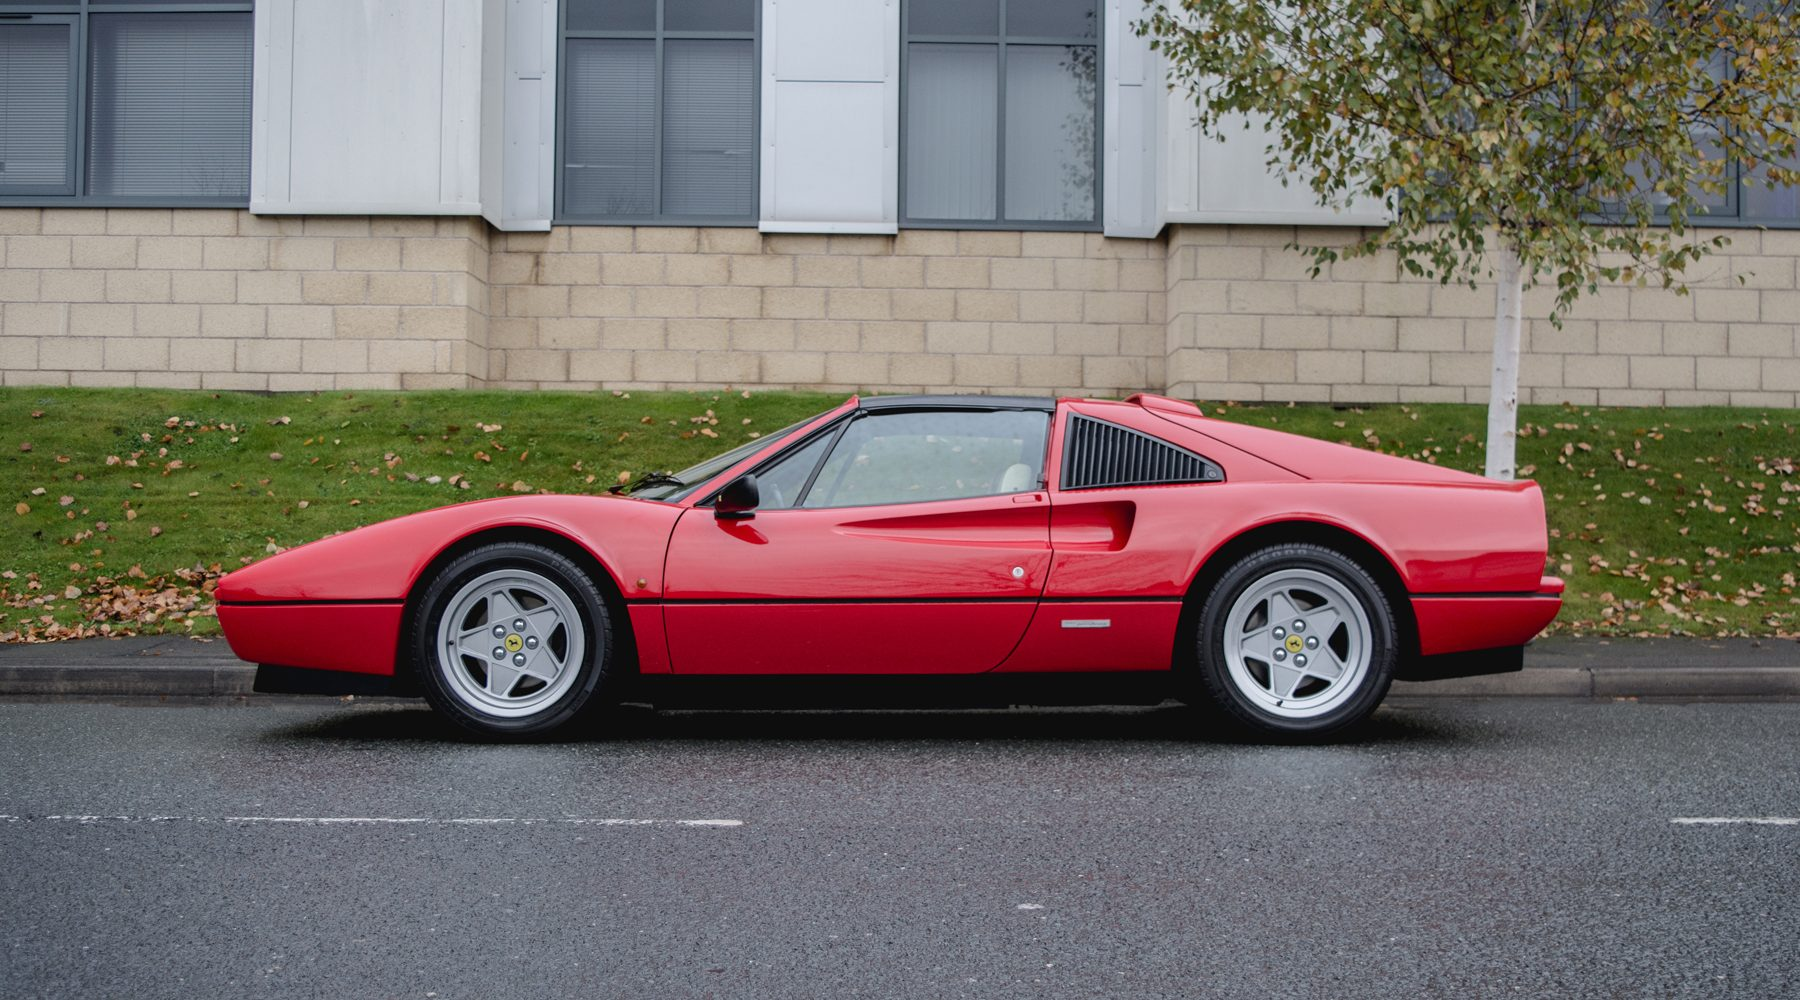 Ultra-low mileage classic Ferrari set to go under the hammer